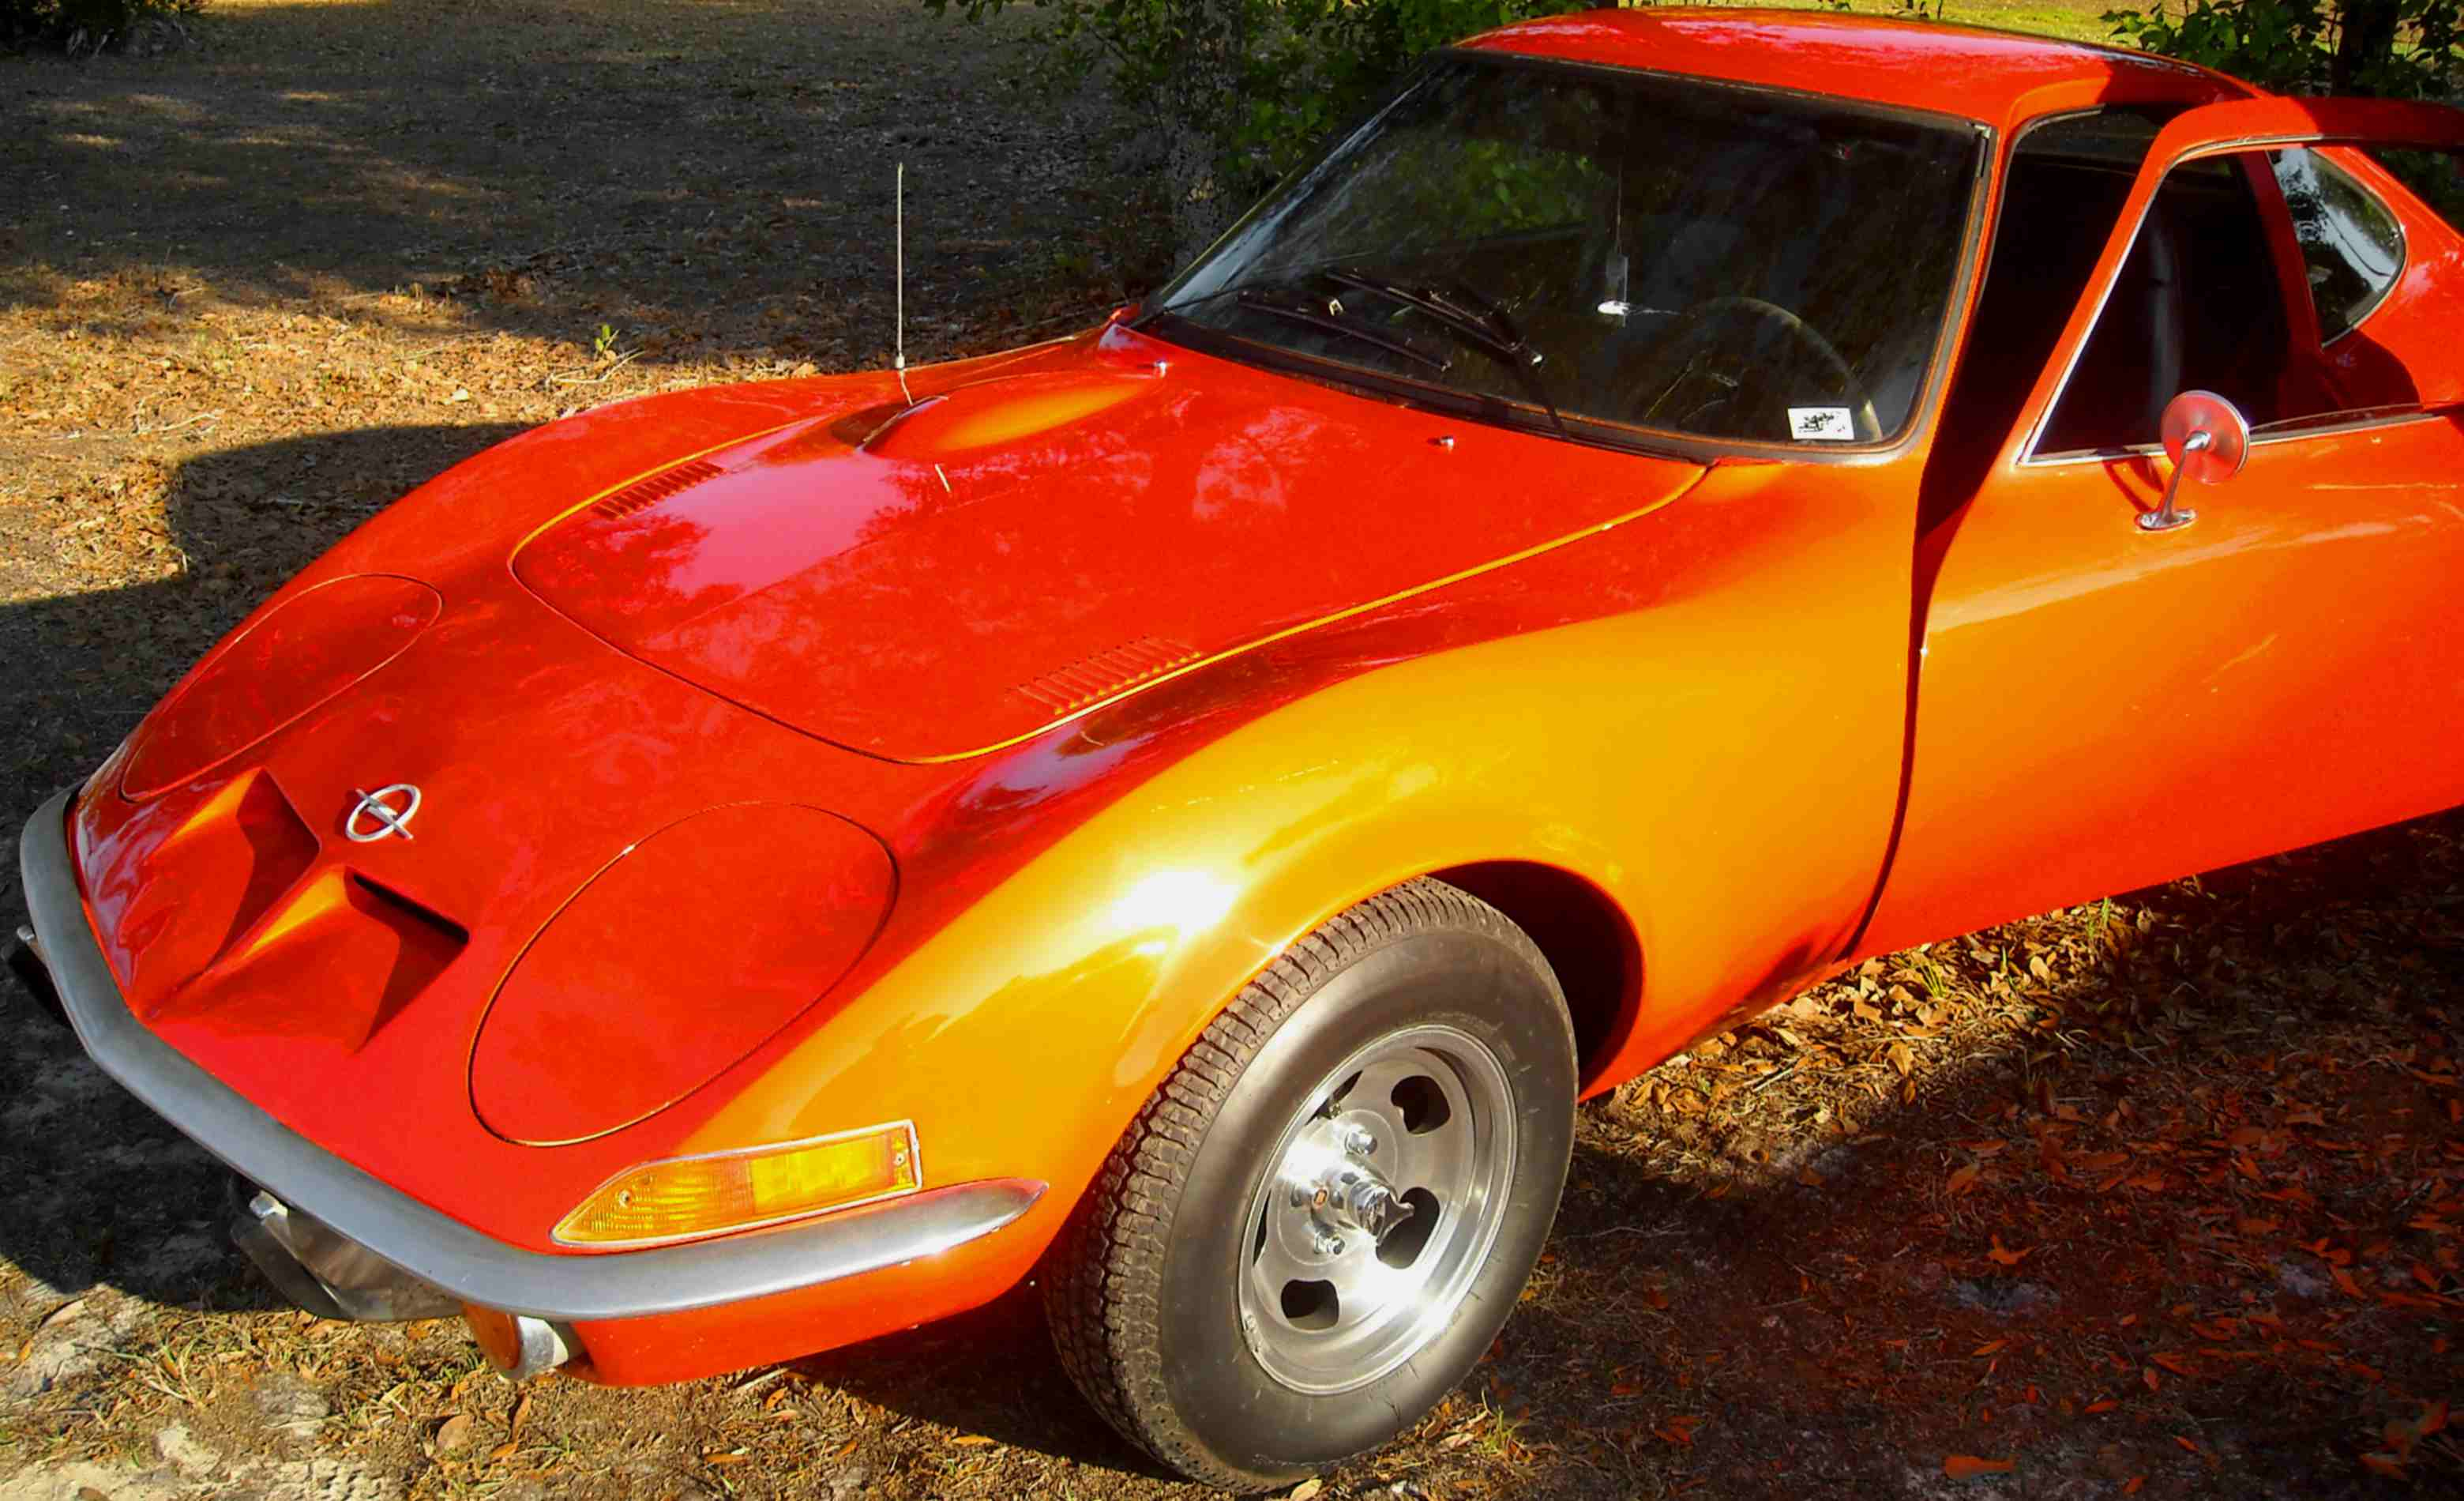 A Pearl Orange Metallic Opel GT